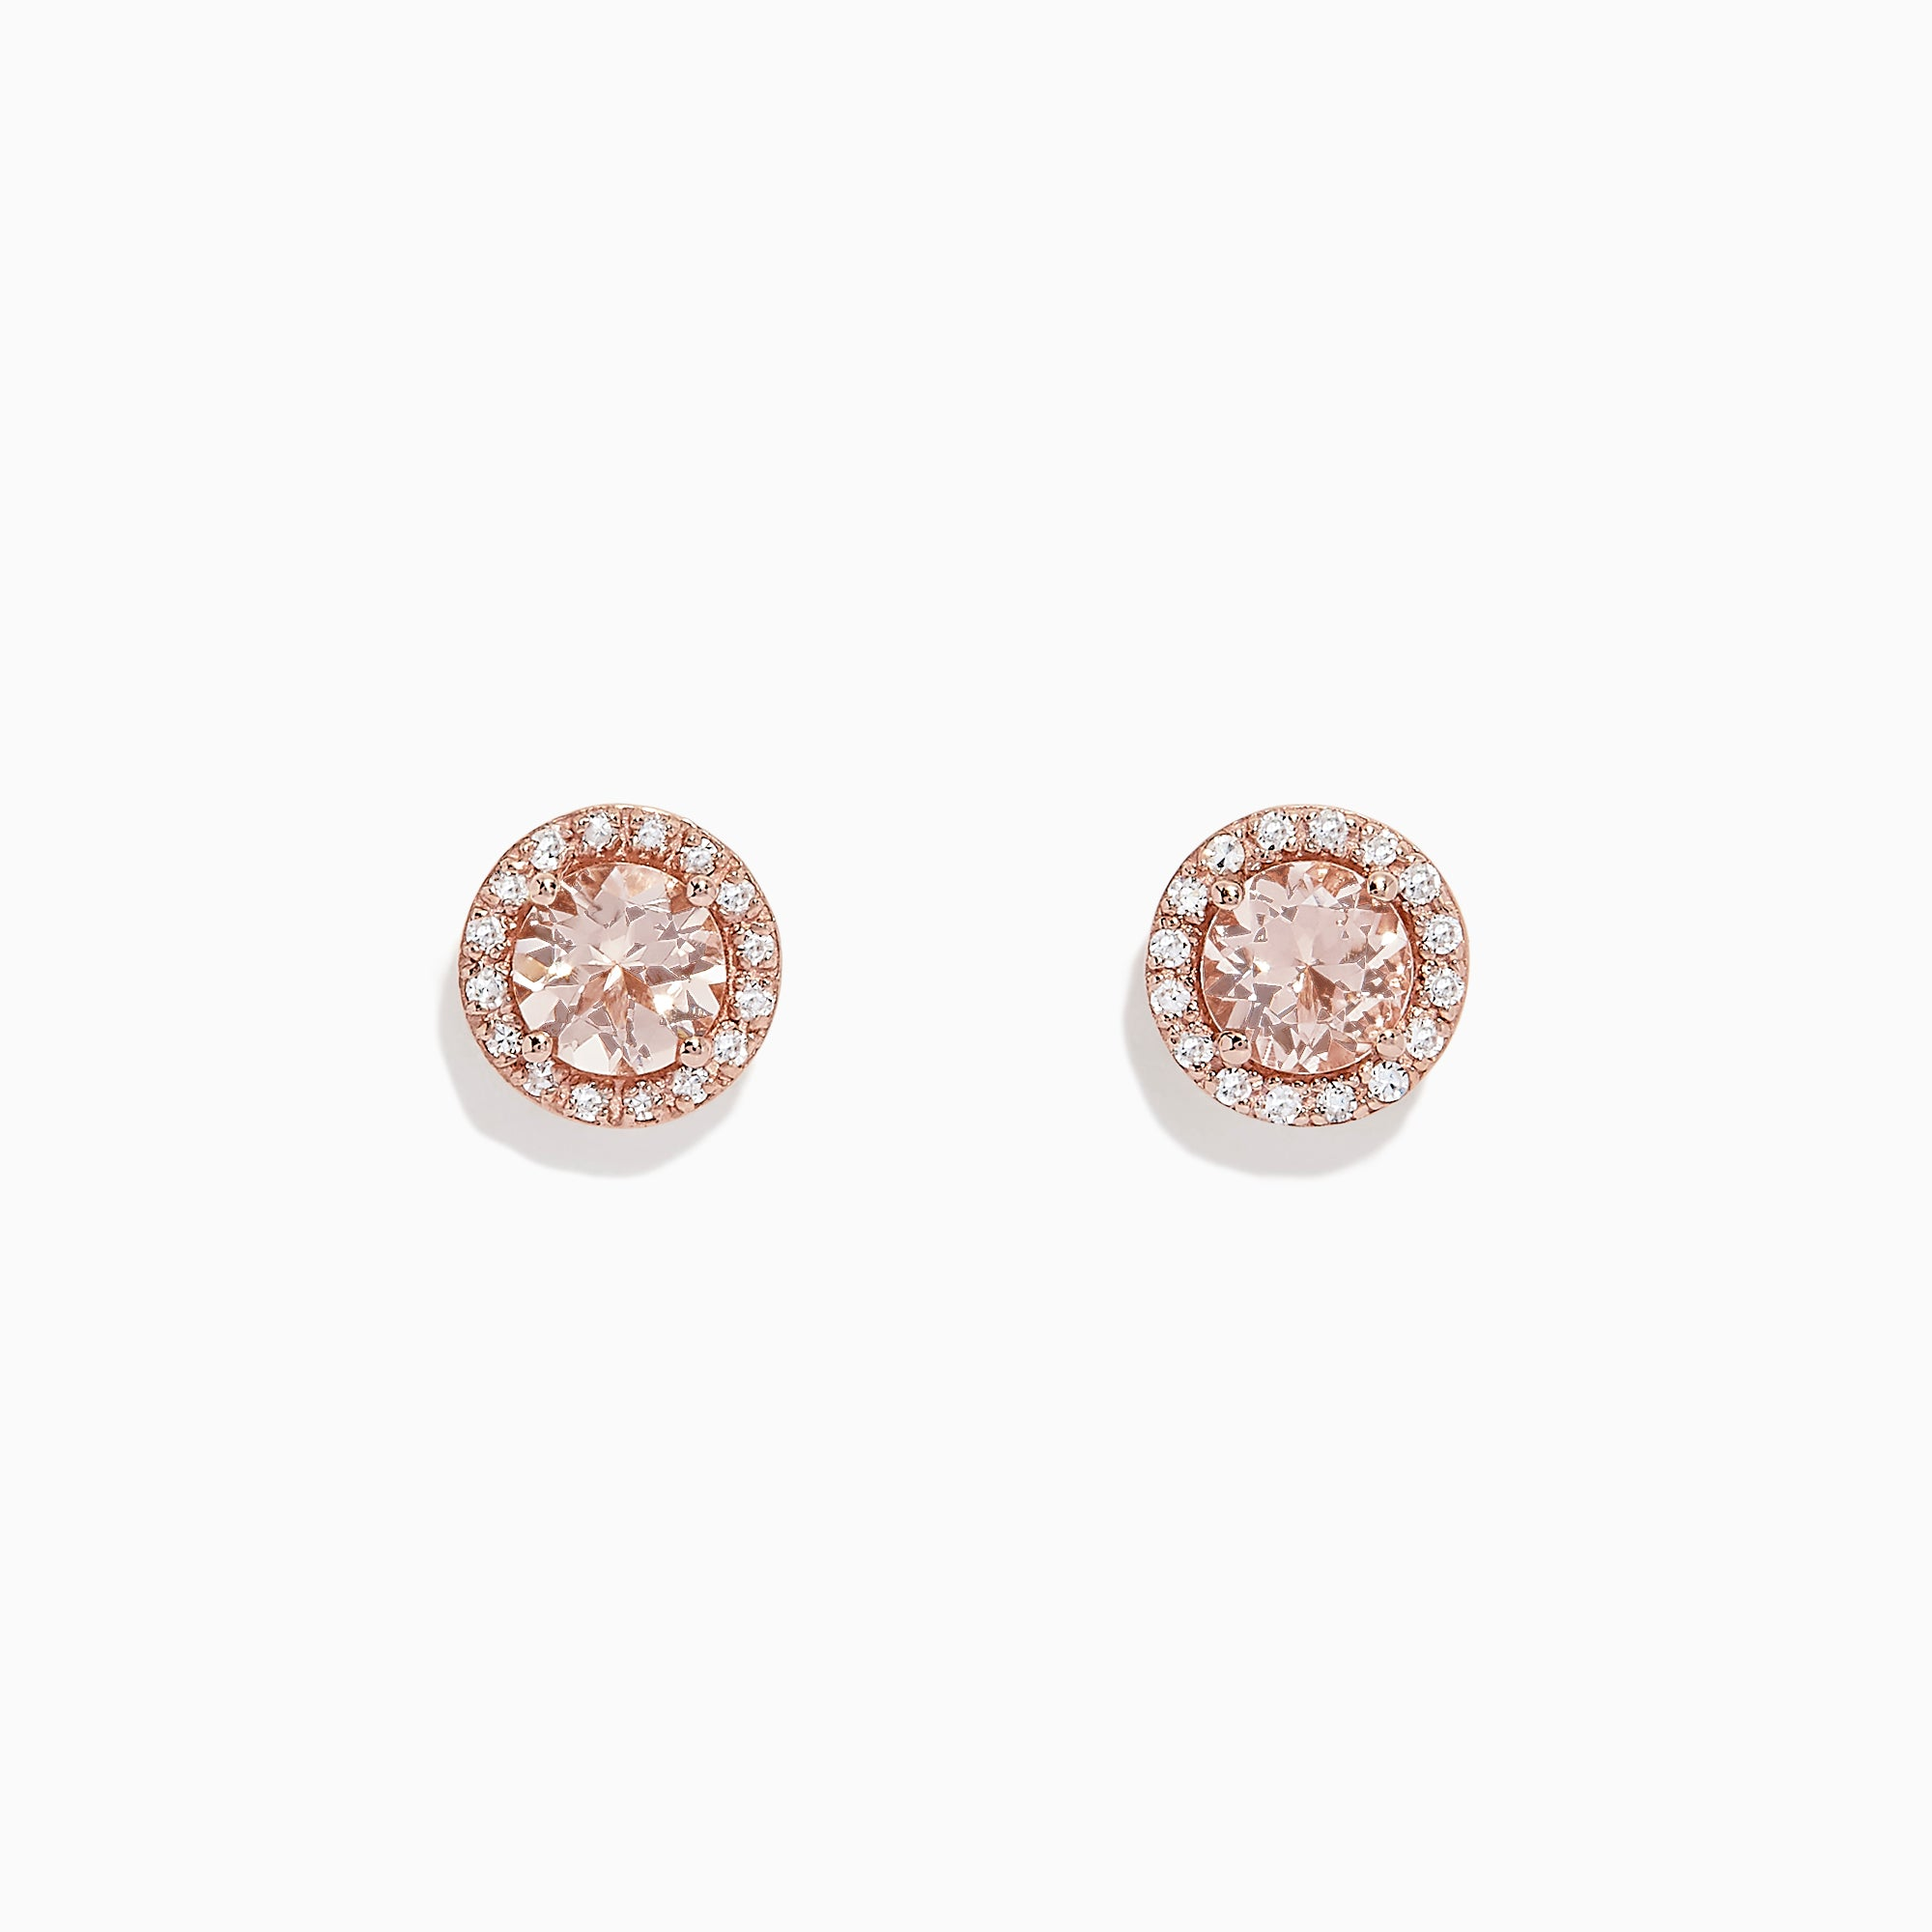 Effy Blush 14K Rose Gold Morganite and Diamond Stud Earrings, 1.82